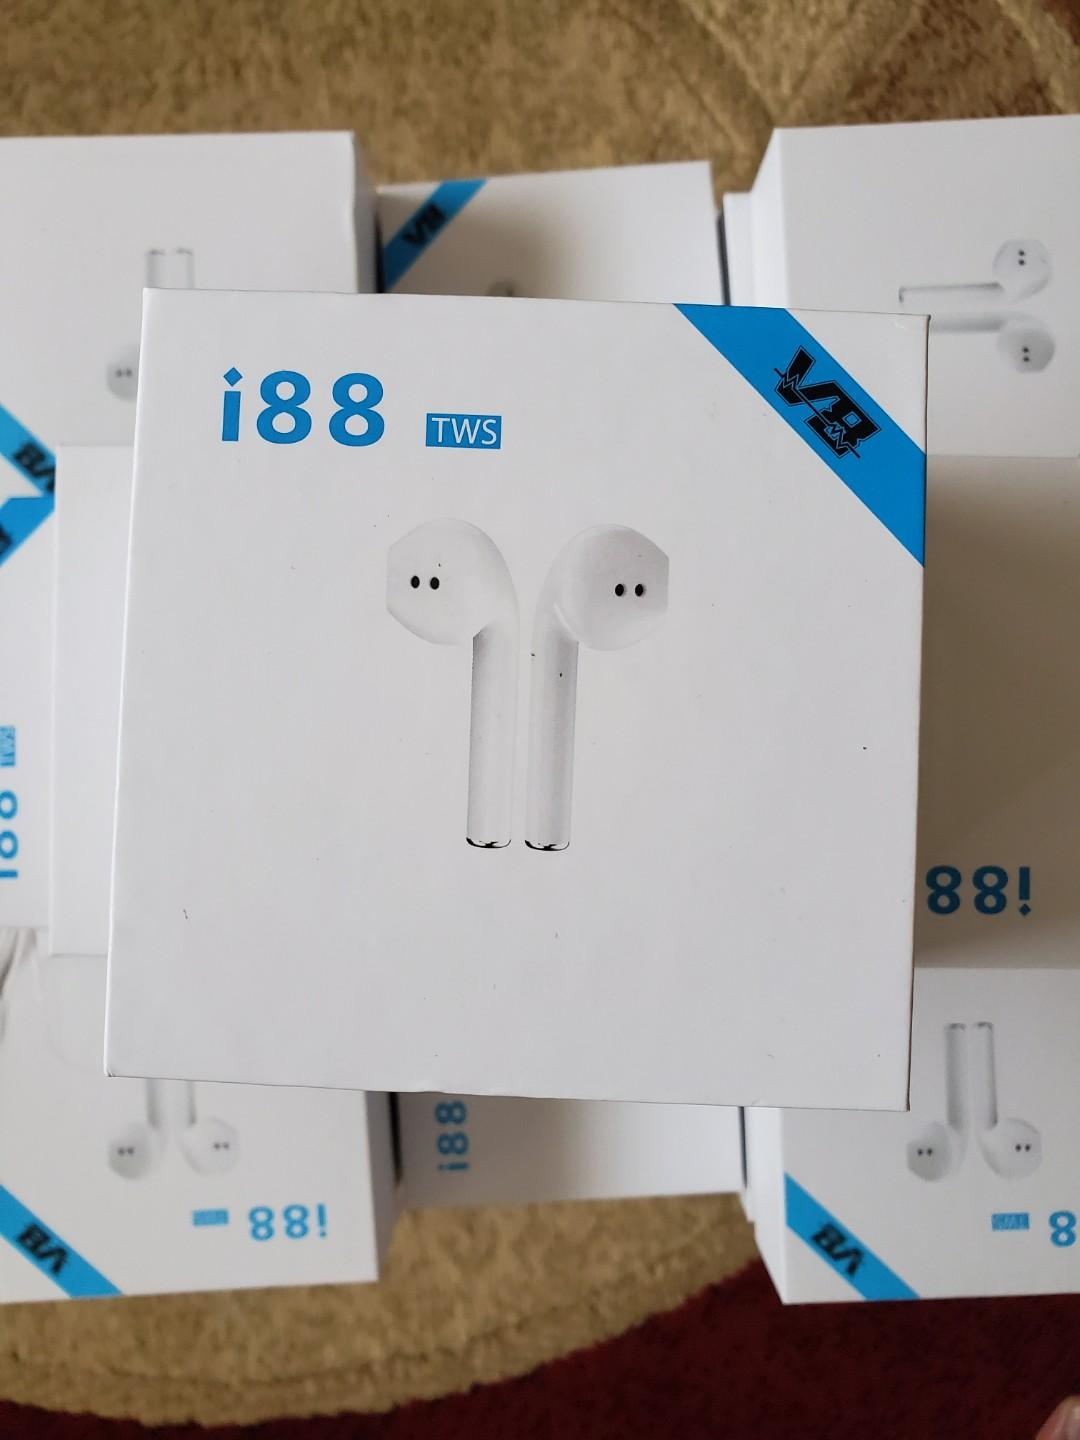 Limited Sale: Amazing Bluetooth Airpods/Earbuds/Headphones (FREE DELIVERY!)